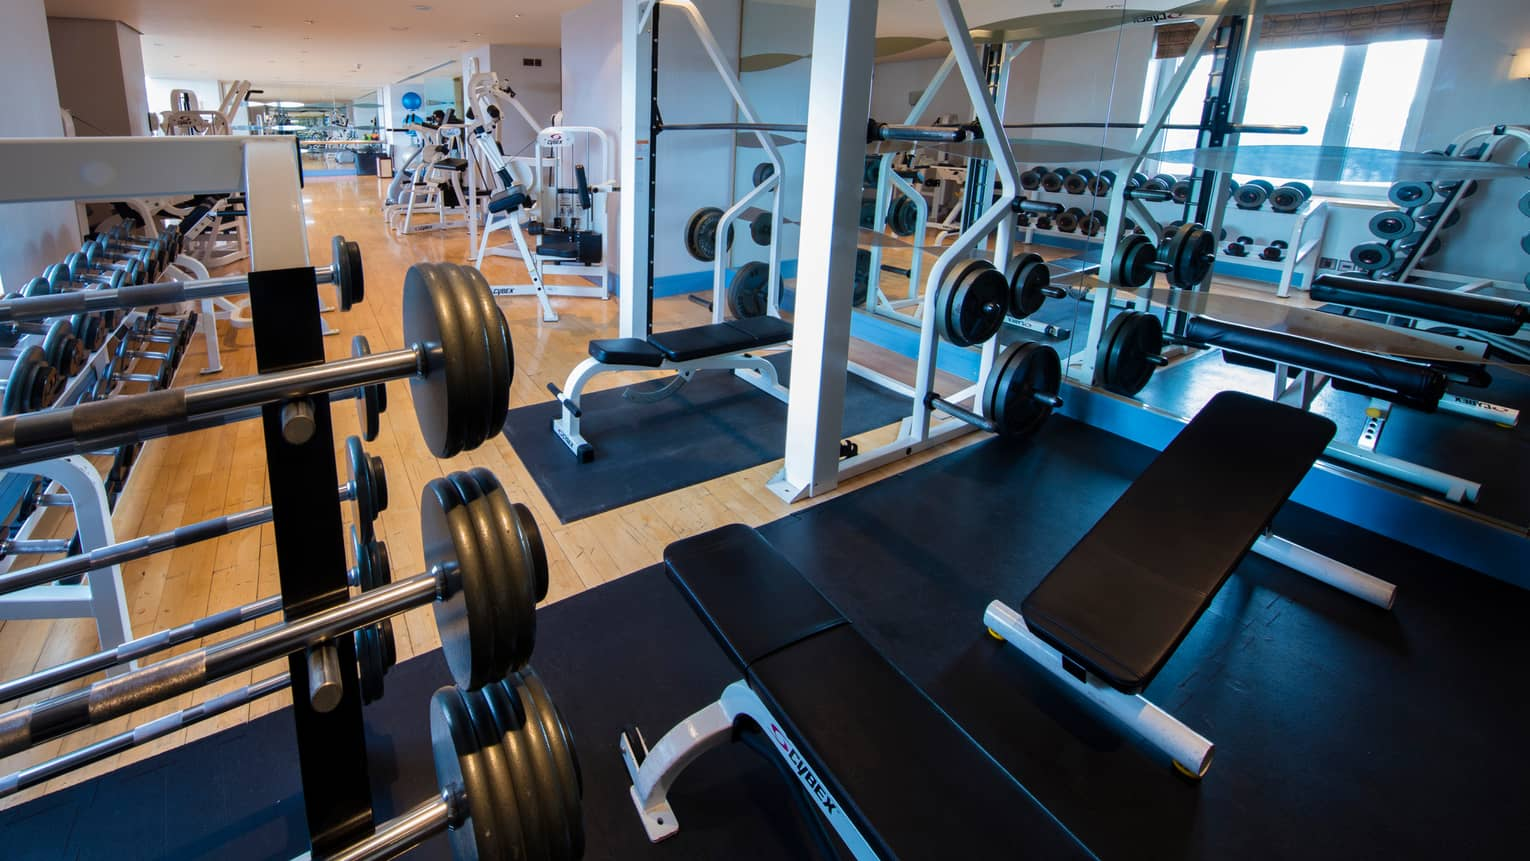 Fitness facility barbells and weight lifting machines, with cardio machines and mirrors on lower level